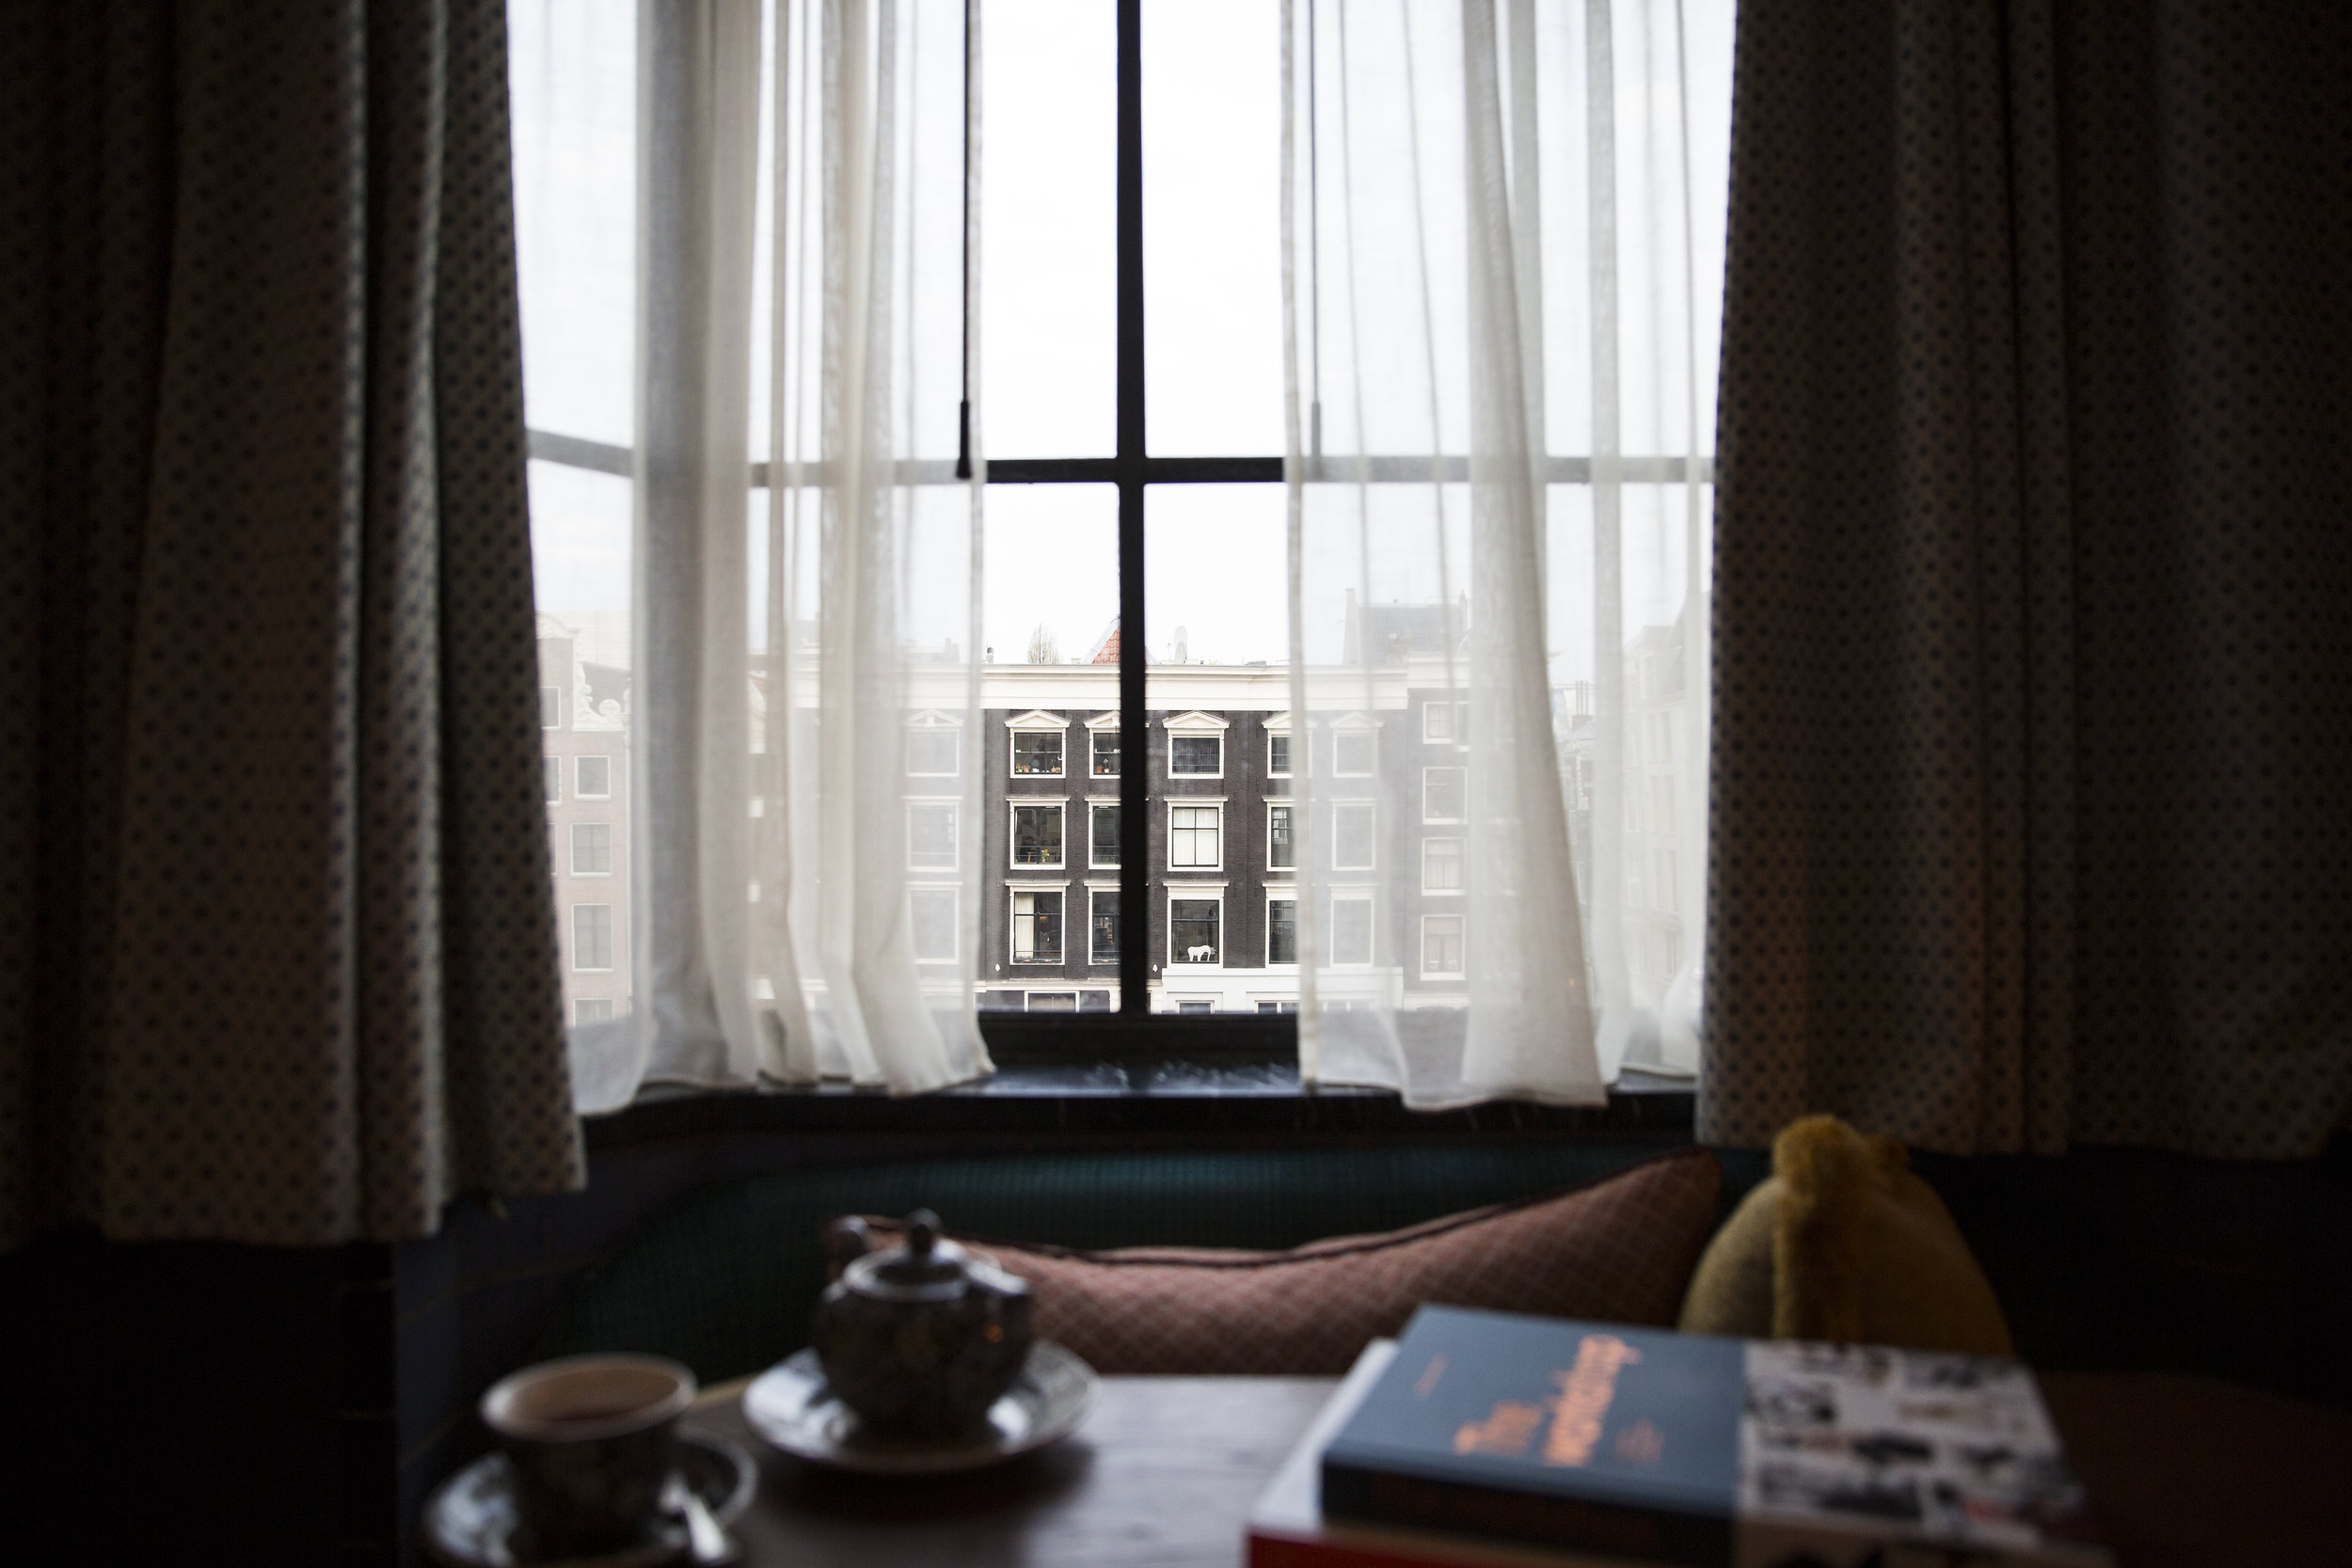 SOHO HOUSE AMSTERDAM   We stayed at Soho House Amsterdam. As with all their houses, it's more than a home away from home, no need to pack toiletries or hair straightners, the bedroom was delightful, the sheets and pillows as always so luxurious and waiting for you is the nespresso coffee machine and House Cookies in the cookie tin.  This site opened last year in the 1930s Bungehuis building, a huge art deco site, that until Soho House took it over, was inhabited by squatters. (I was told they have moved next door) The art deco touches are evident throughout, the members area is relaxing and stylish. The roof has fantastic views plenty of seating areas and a pool if you fancy doing some lengths! Cecconis is on the ground floor, if you don't want to venture too far, I can recommended the Aubergine parmigiana!  *Our stay here was gifted as part of some work I did for Soho House last year.